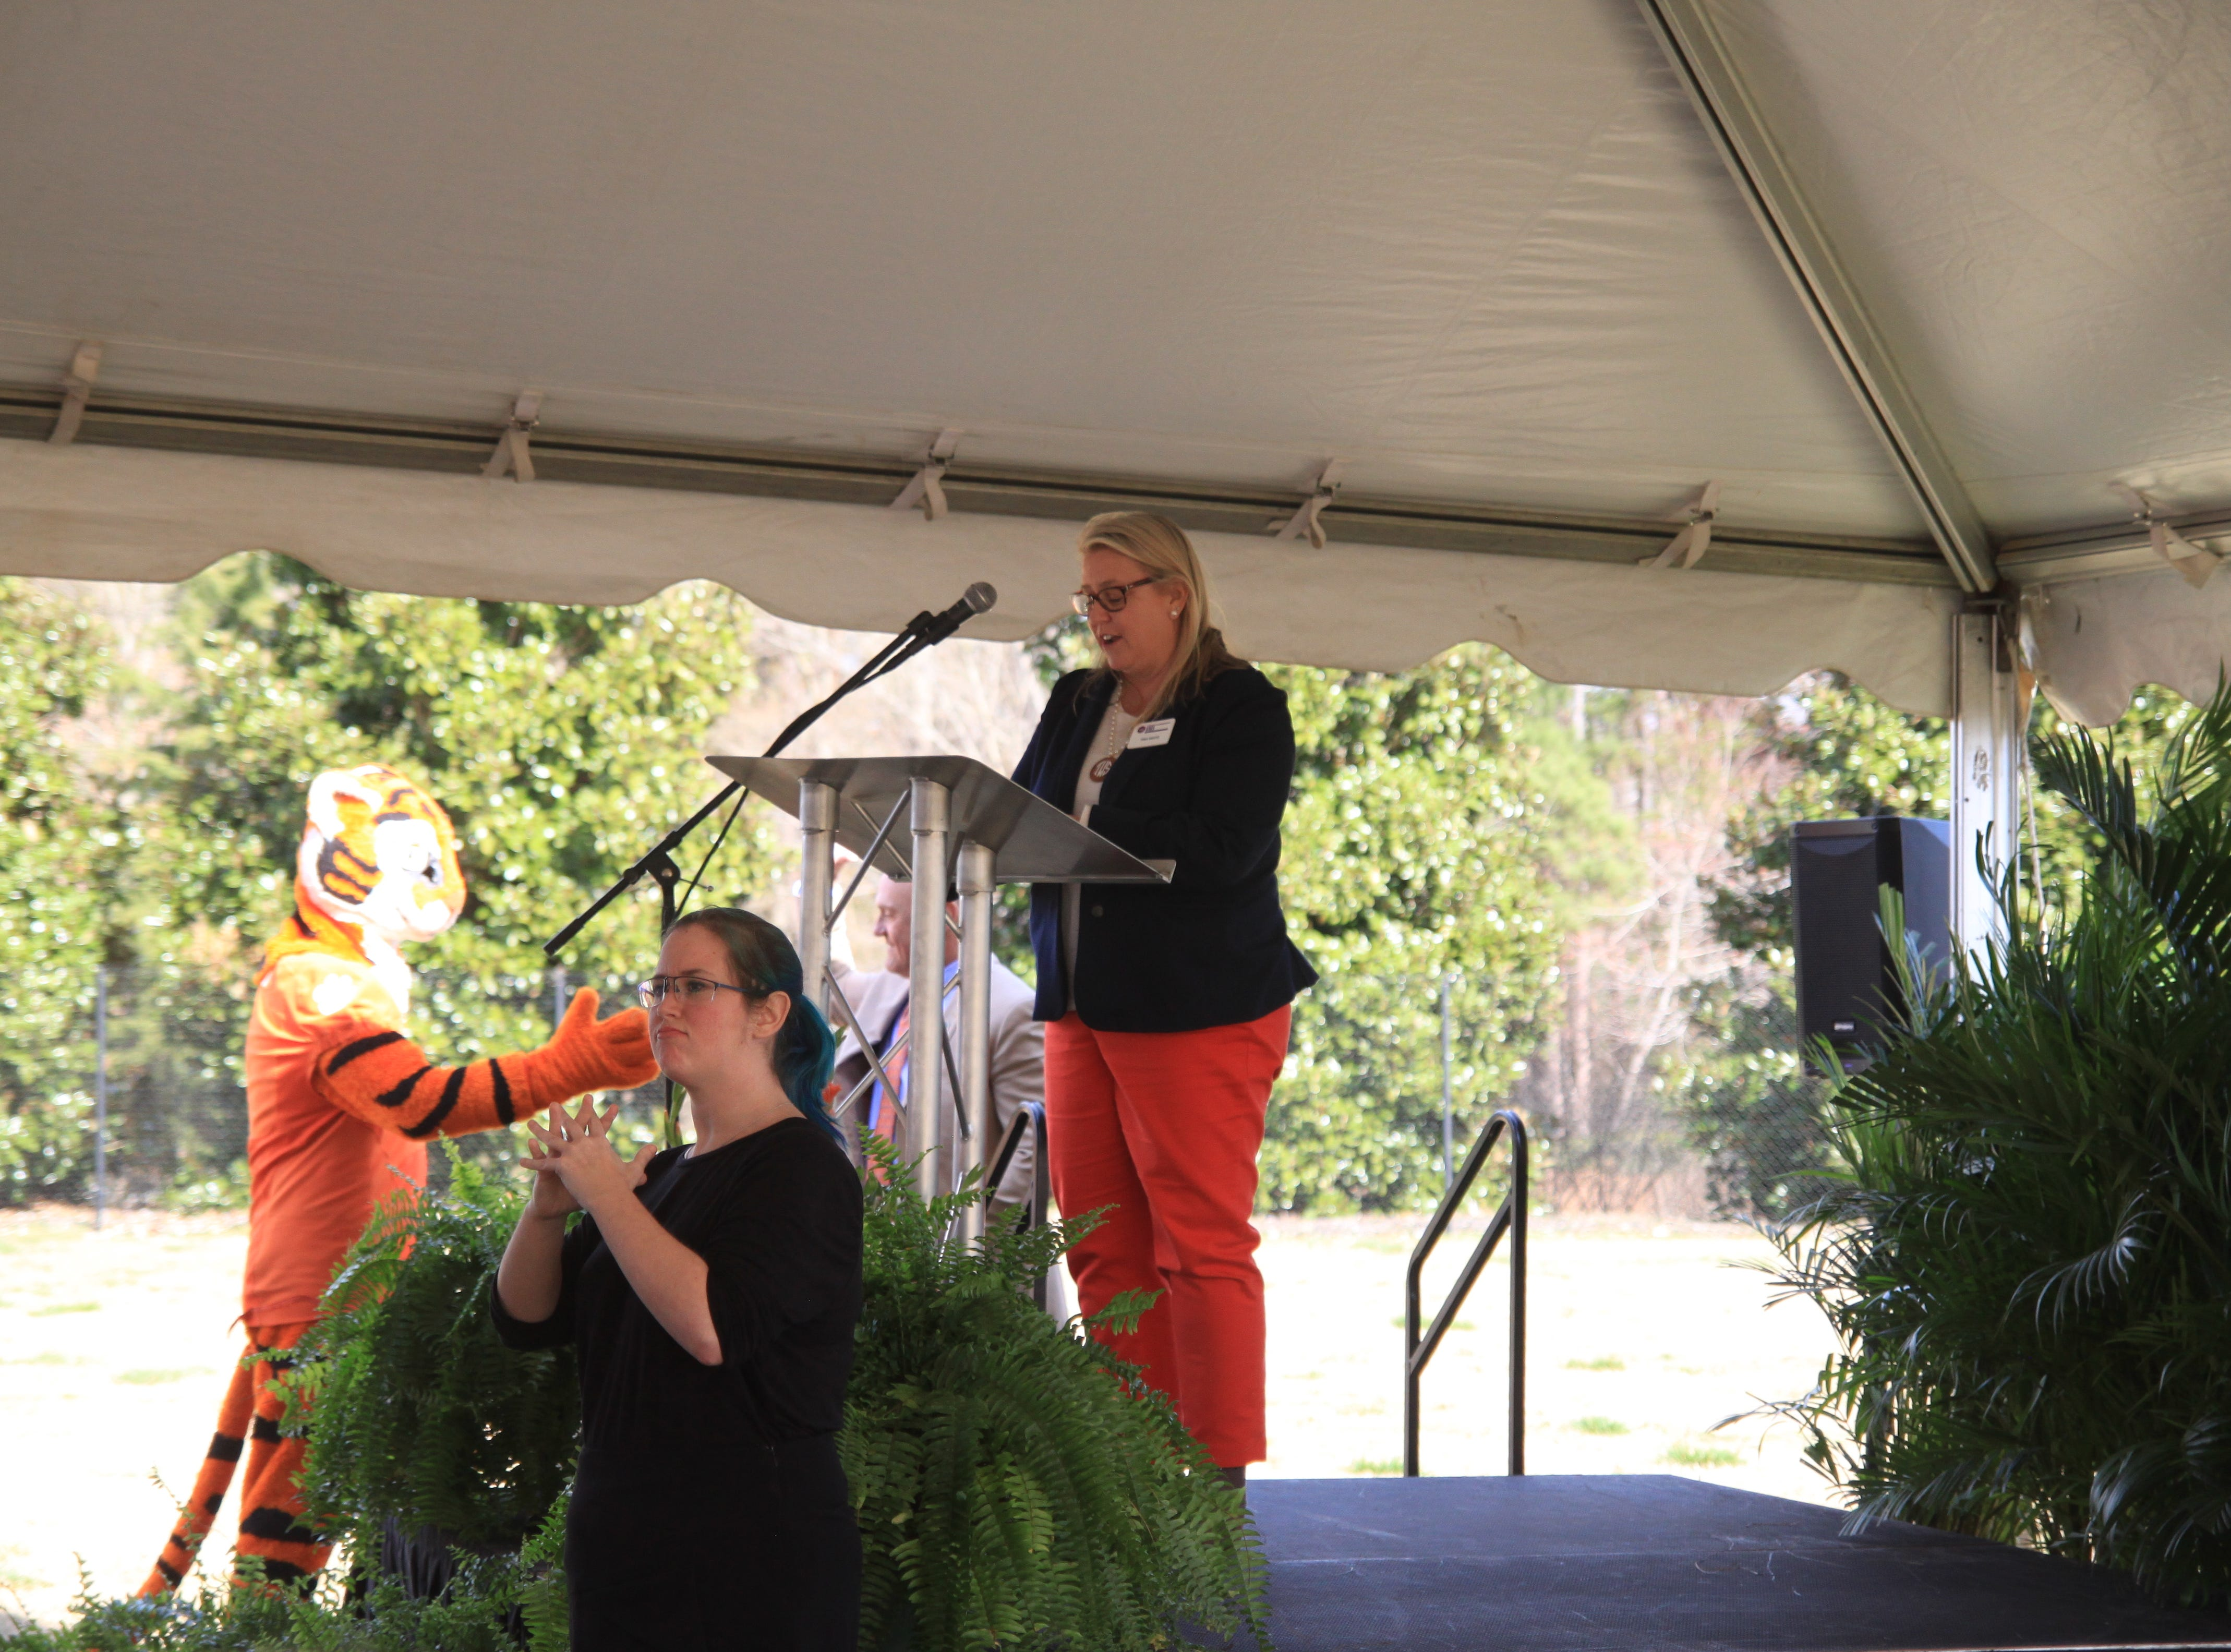 Tina White, chair of the President's Commission on Women, speaks at the groundbreaking for the Child Development Center.